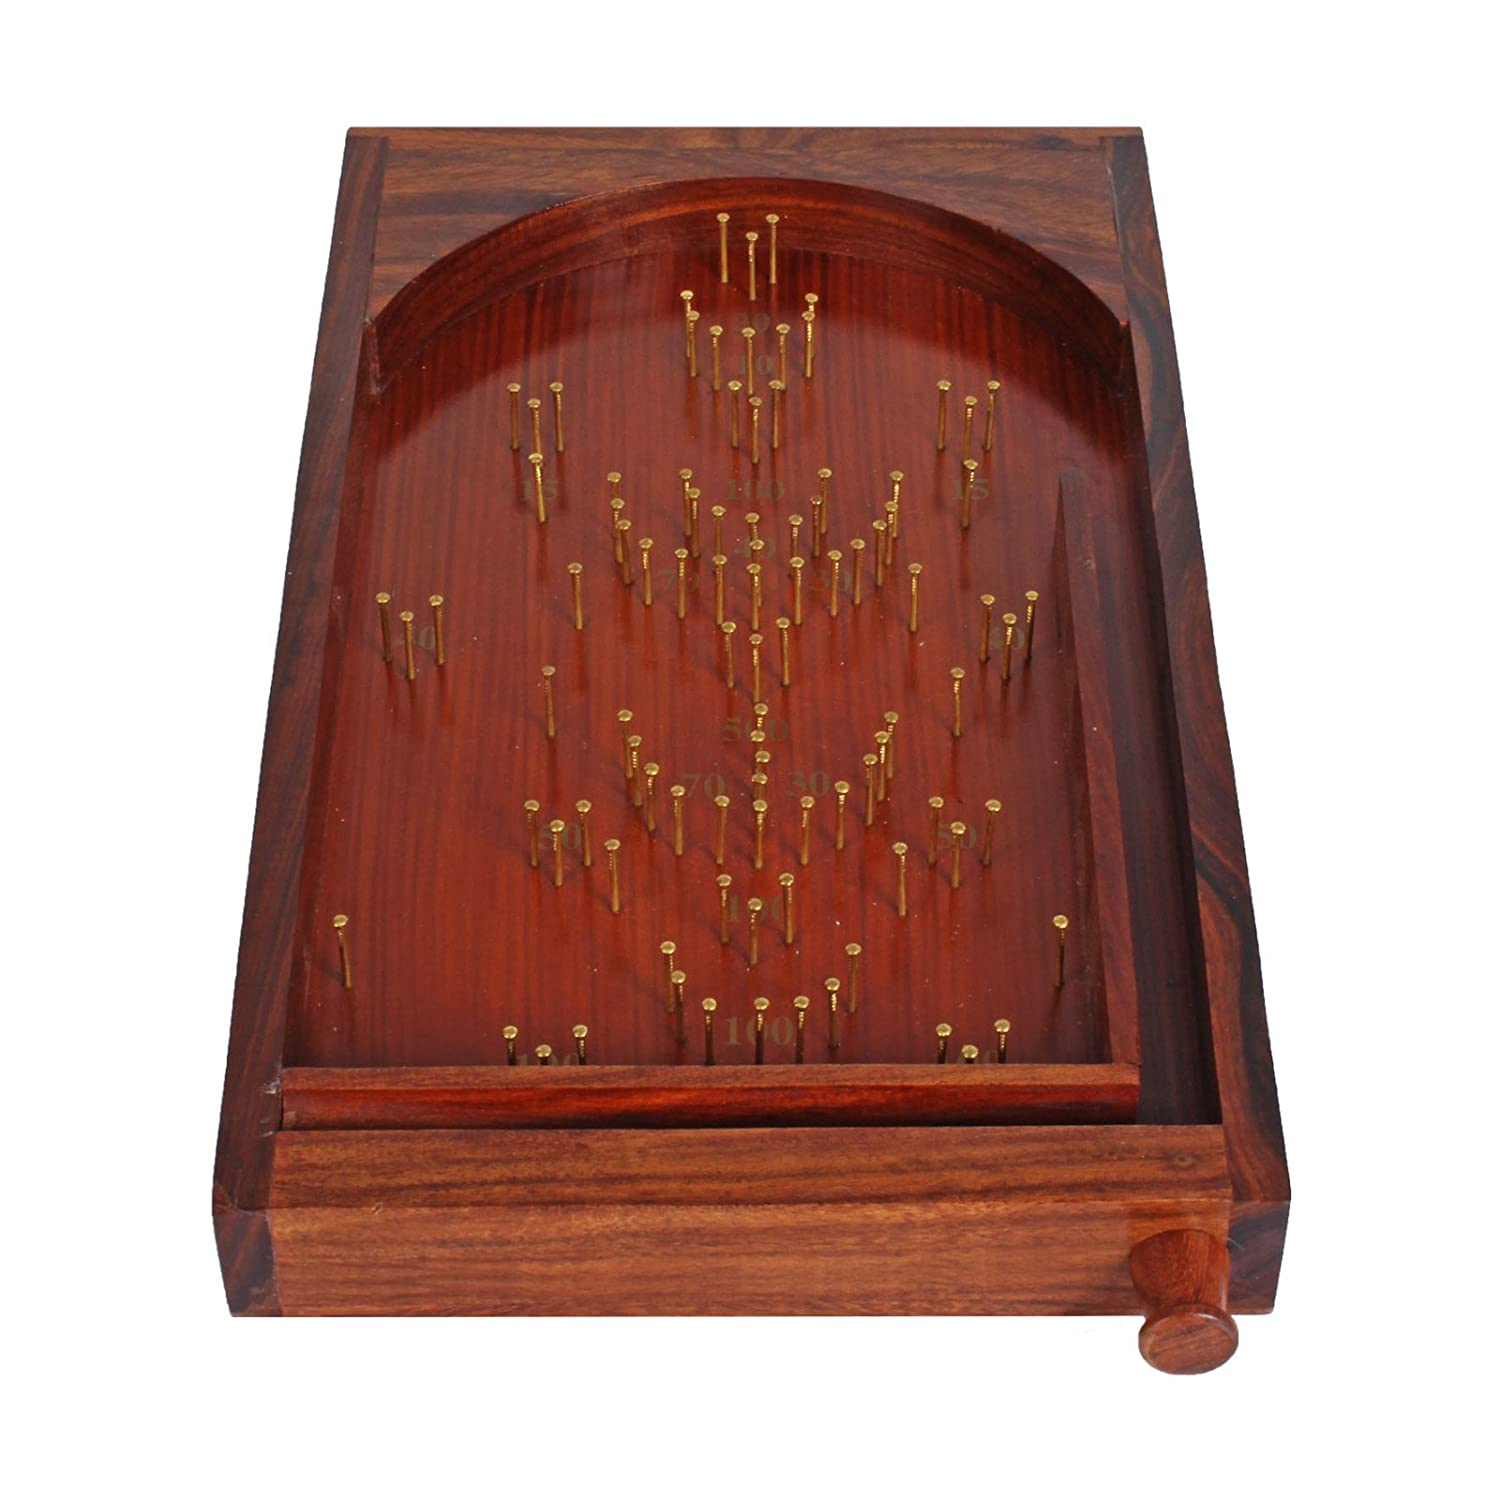 Wooden Bagatelle Table Game Pinball Family Gift